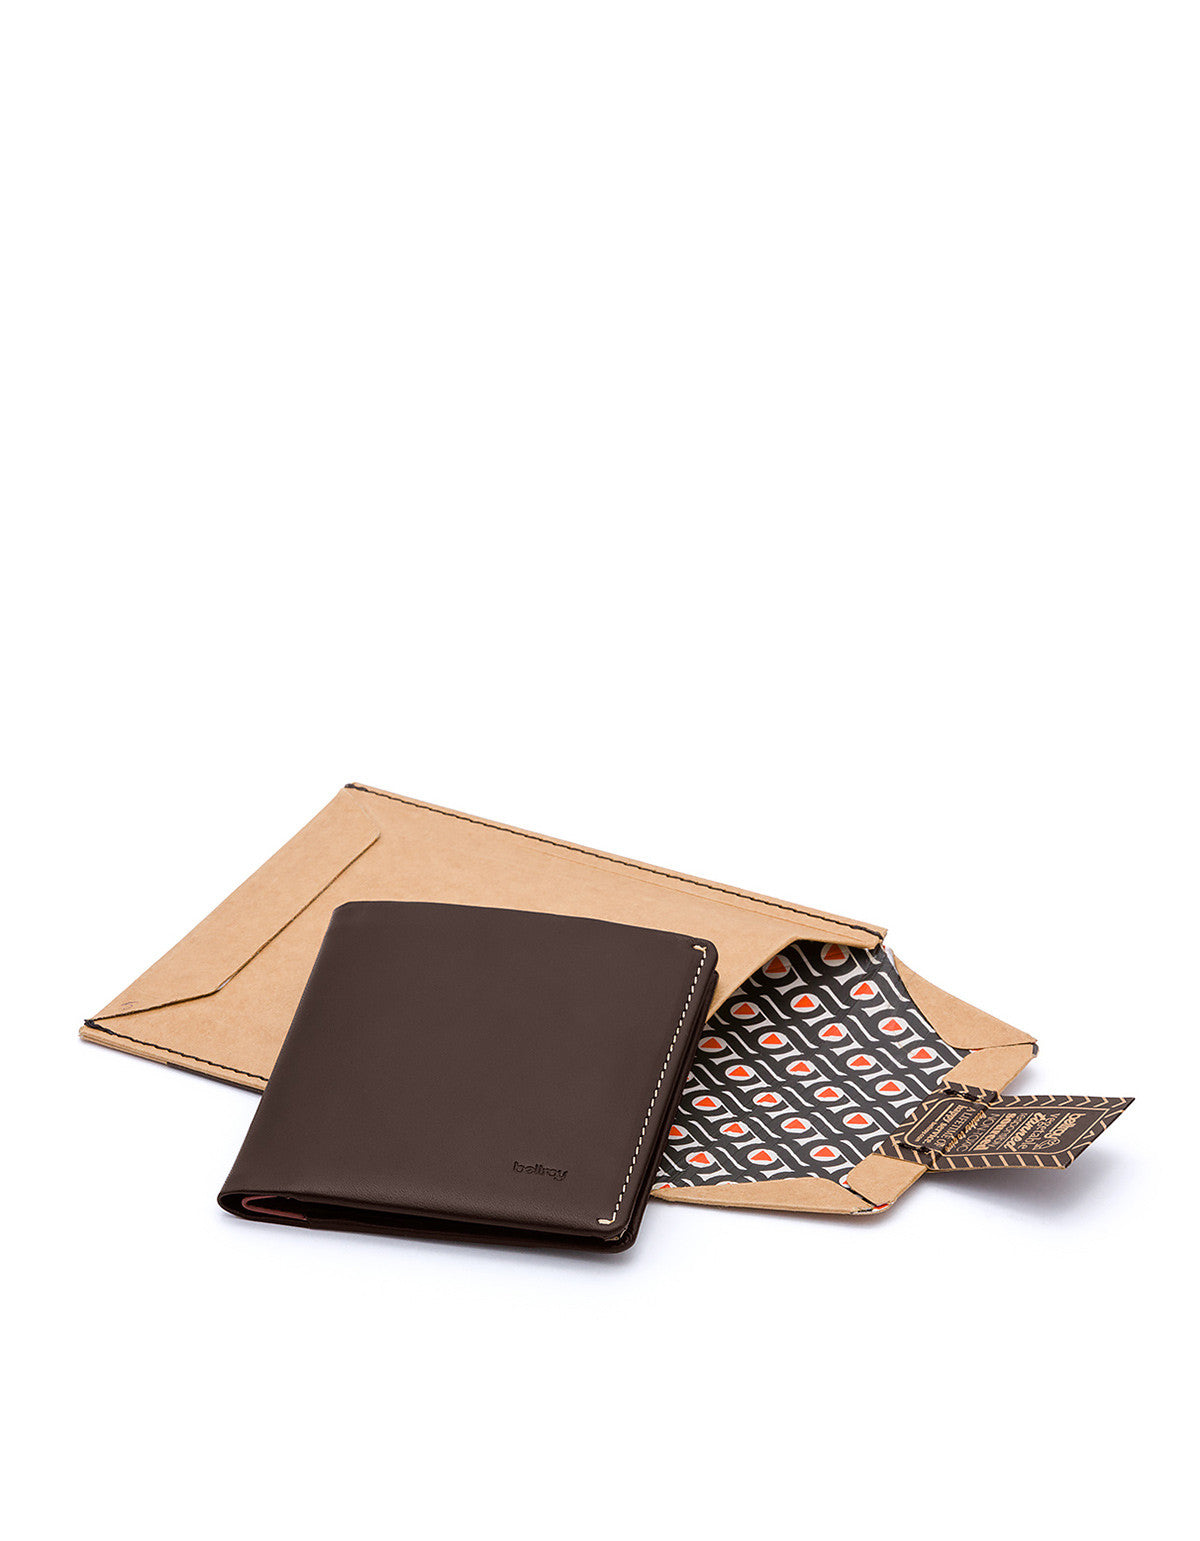 Bellroy Note Sleeve Wallet Java - Still Life - 5